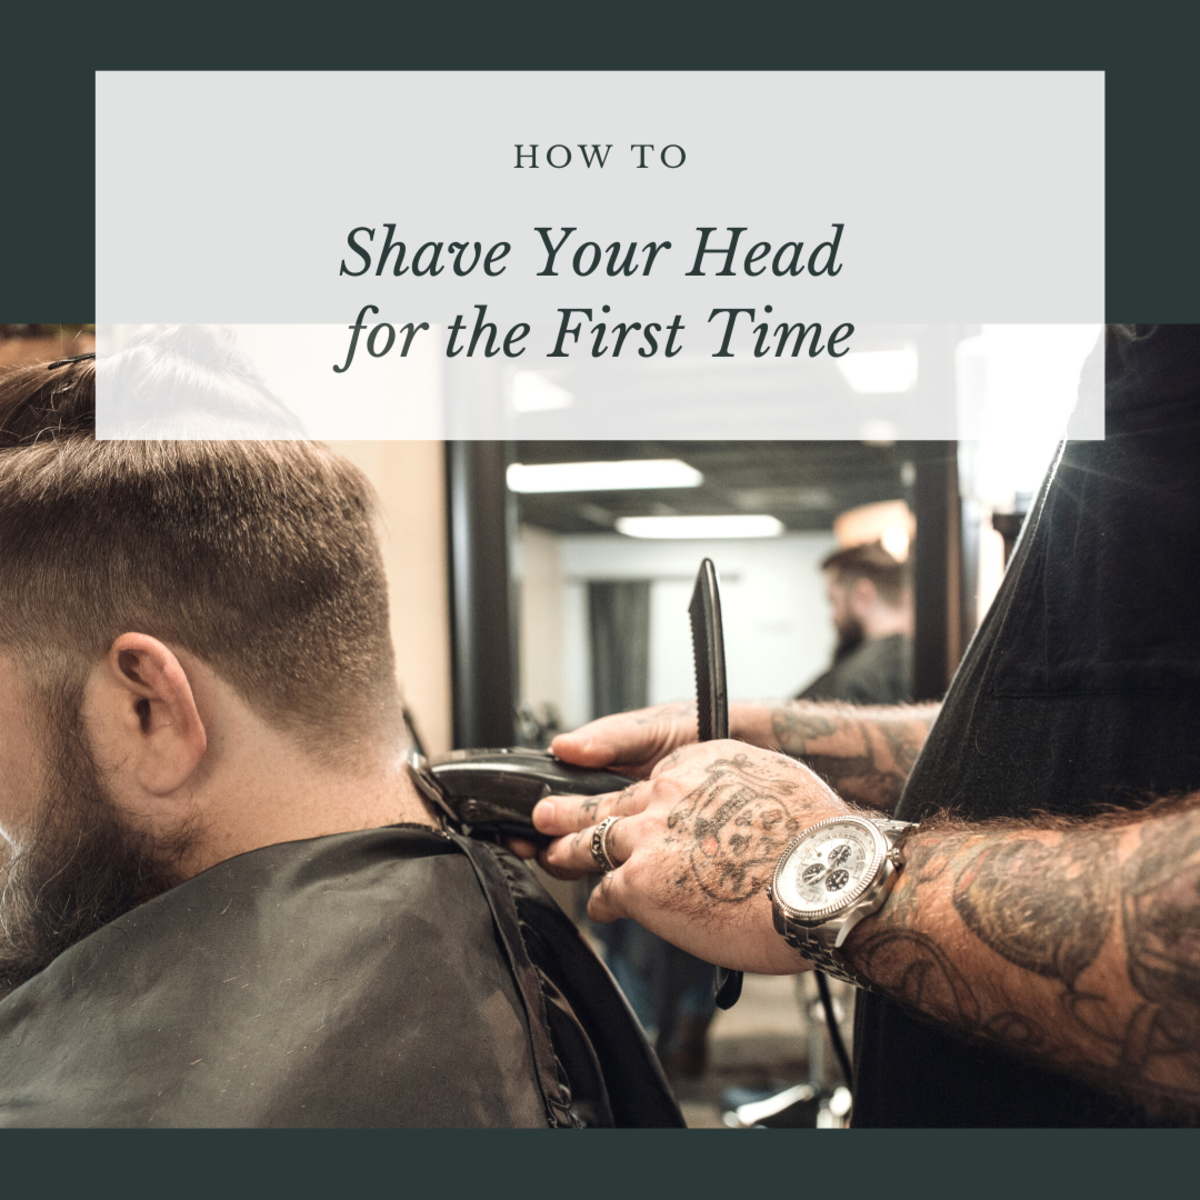 How to Shave Your Head for the First Time